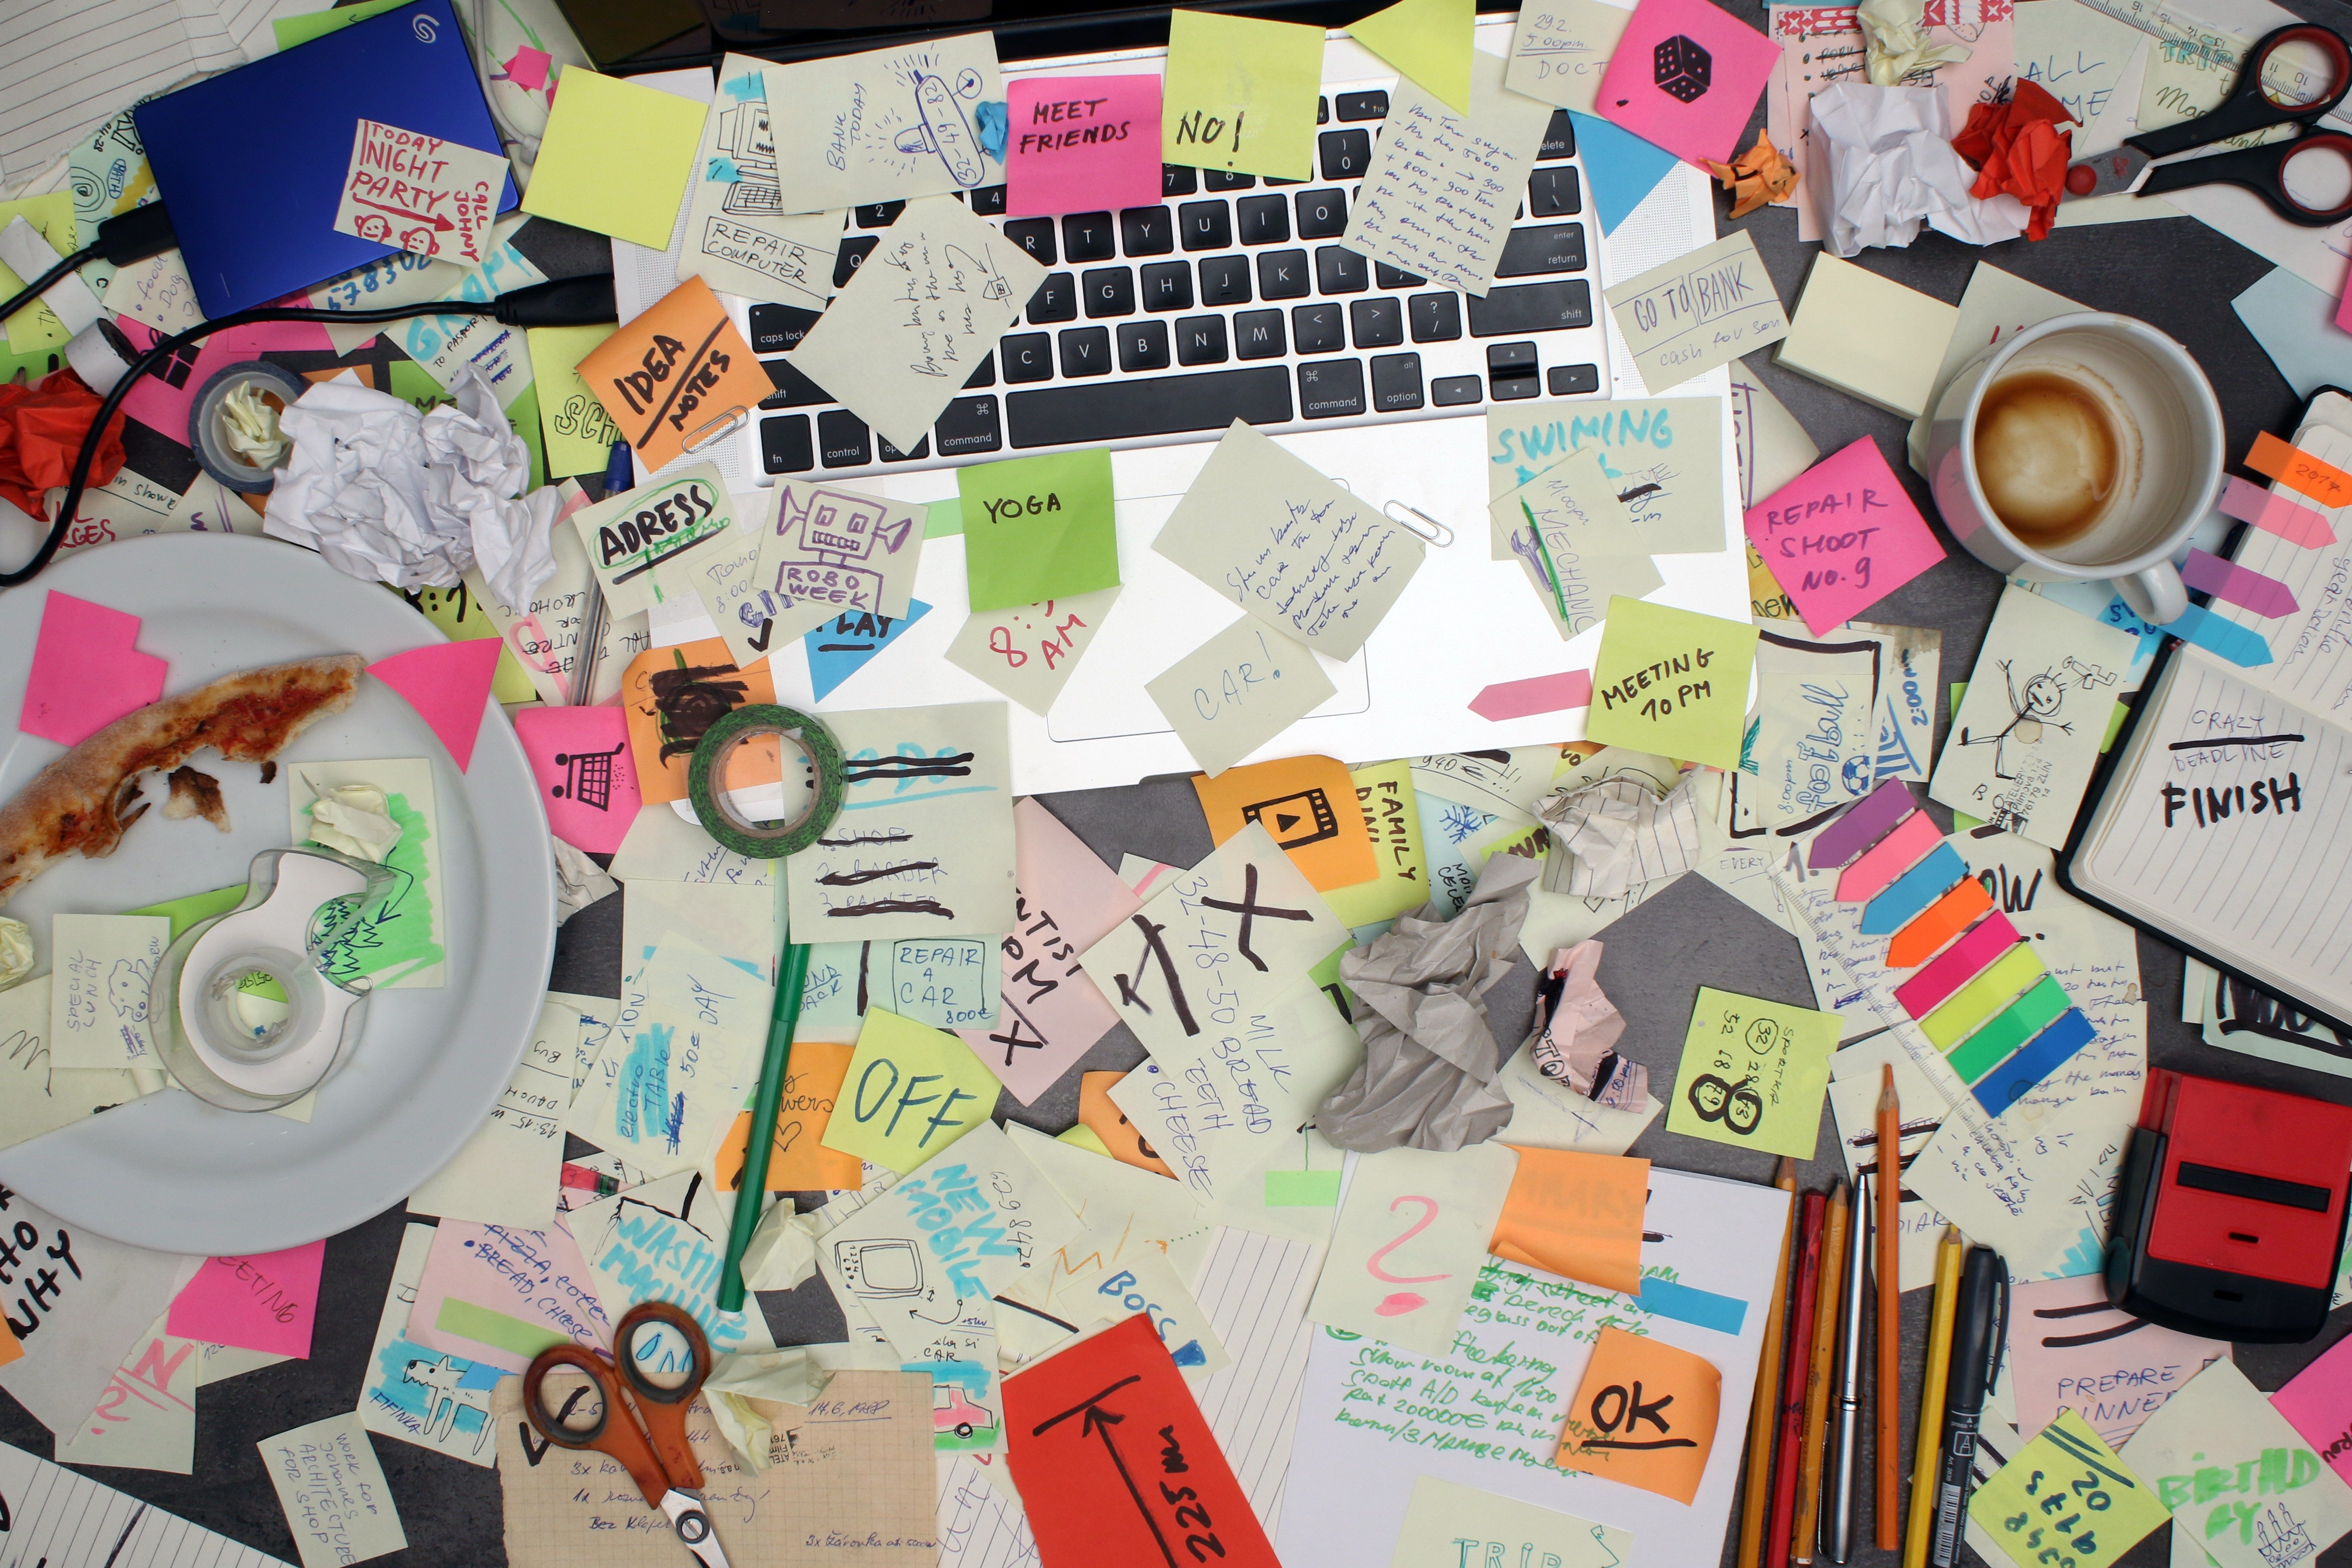 Top view on office desk with laptop computer and notes all around. Overwhelmed with work concept.